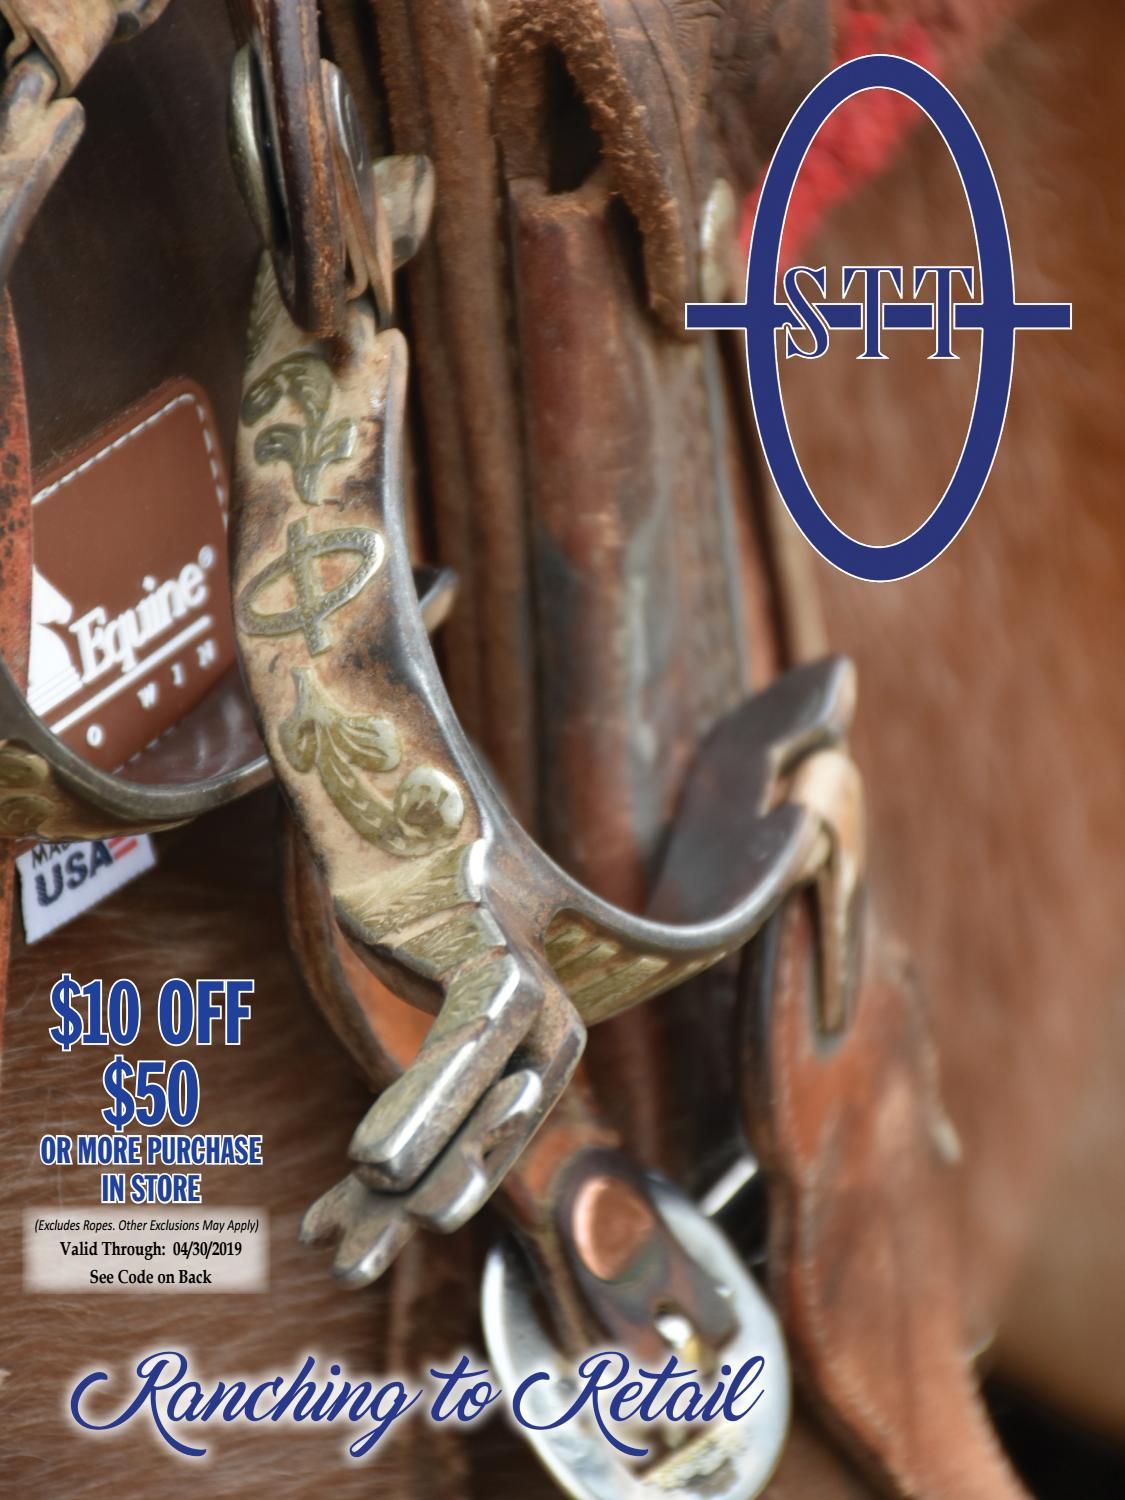 f1fa0e221 South Texas Tack - Spring 2019 by southtexastack - issuu